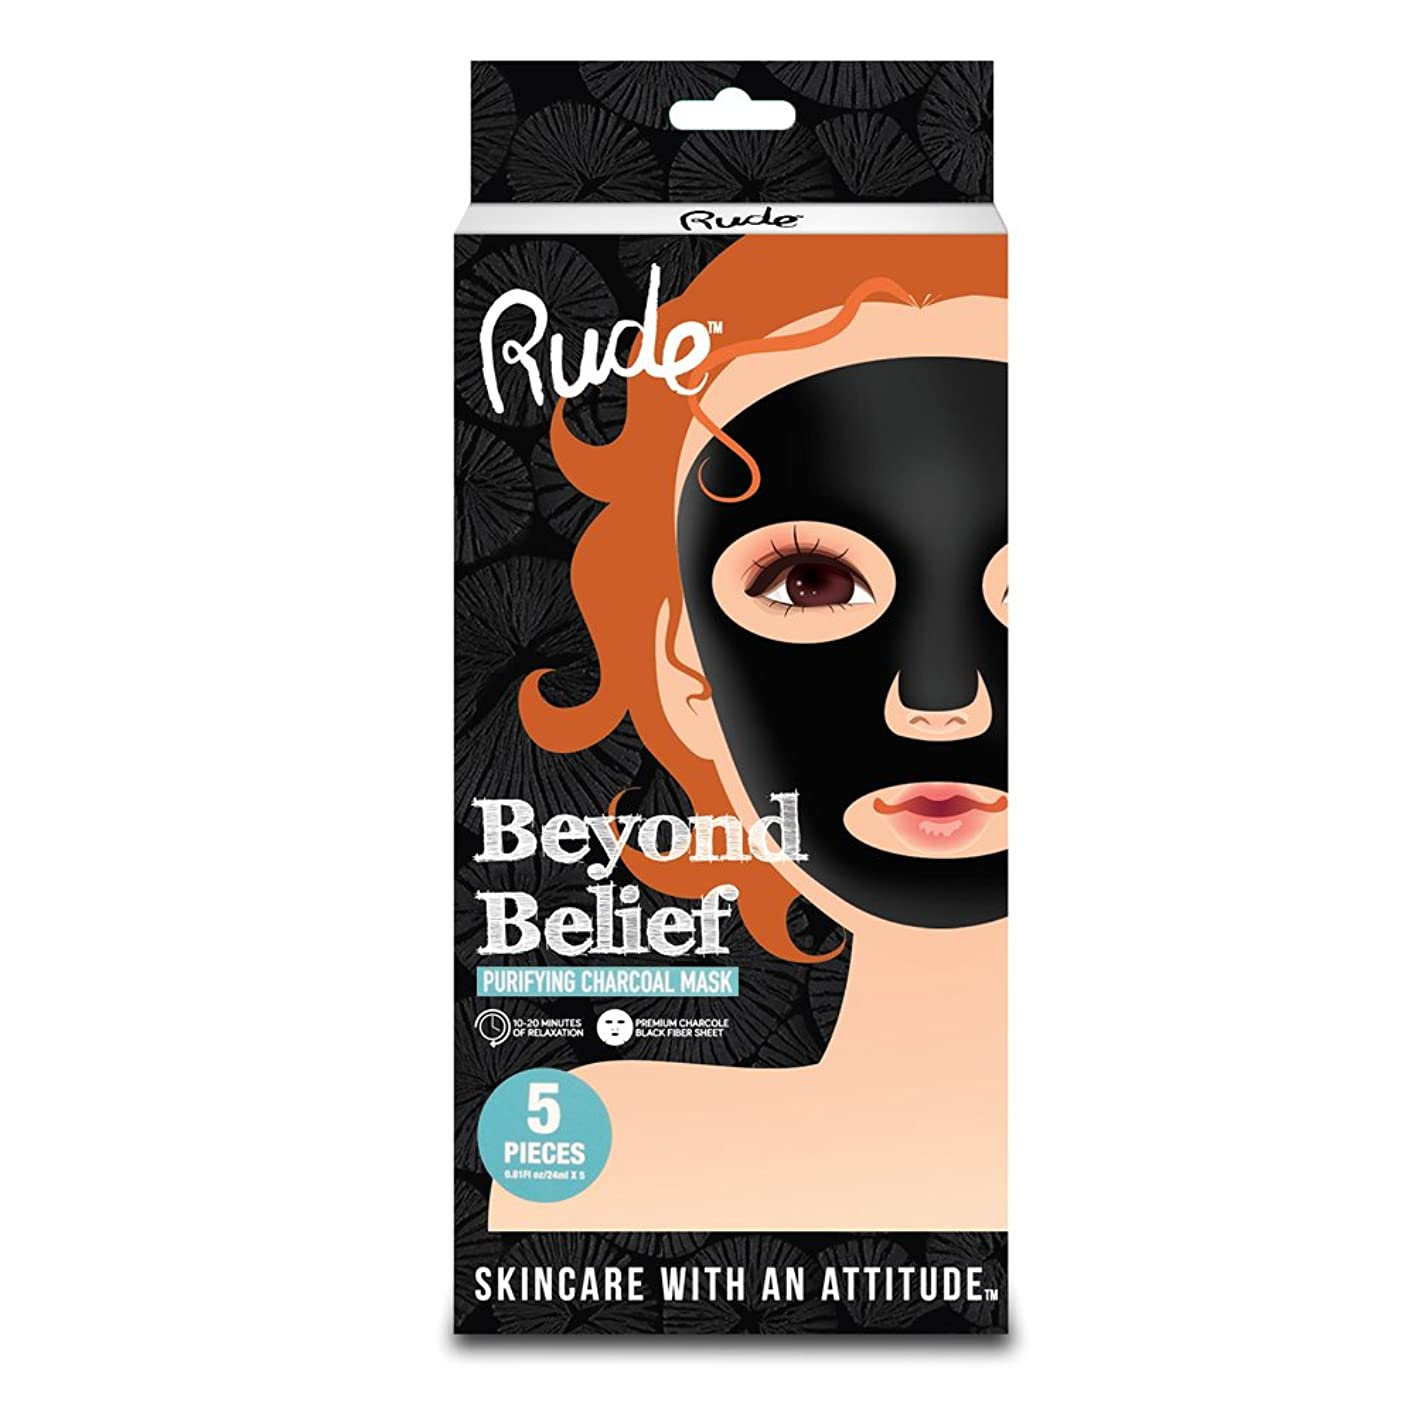 犯罪ライオンやろうRUDE Beyond Belief Purifying Charcoal Mask 5 Piece Pack (並行輸入品)